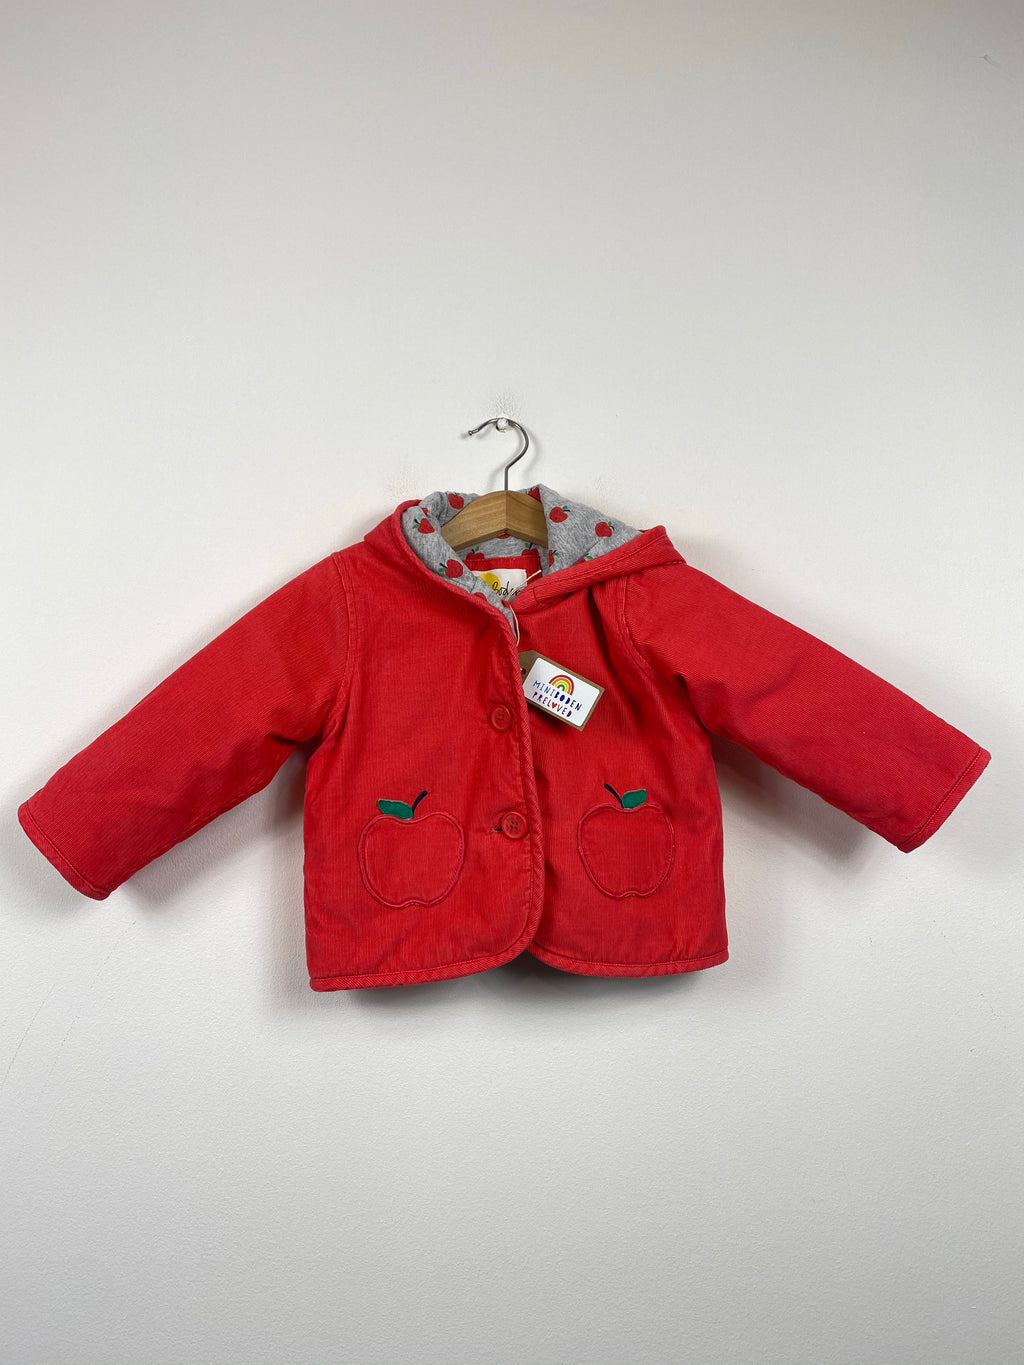 Apple Pockets Red Needle-Cord Jacket (6-12 Months)